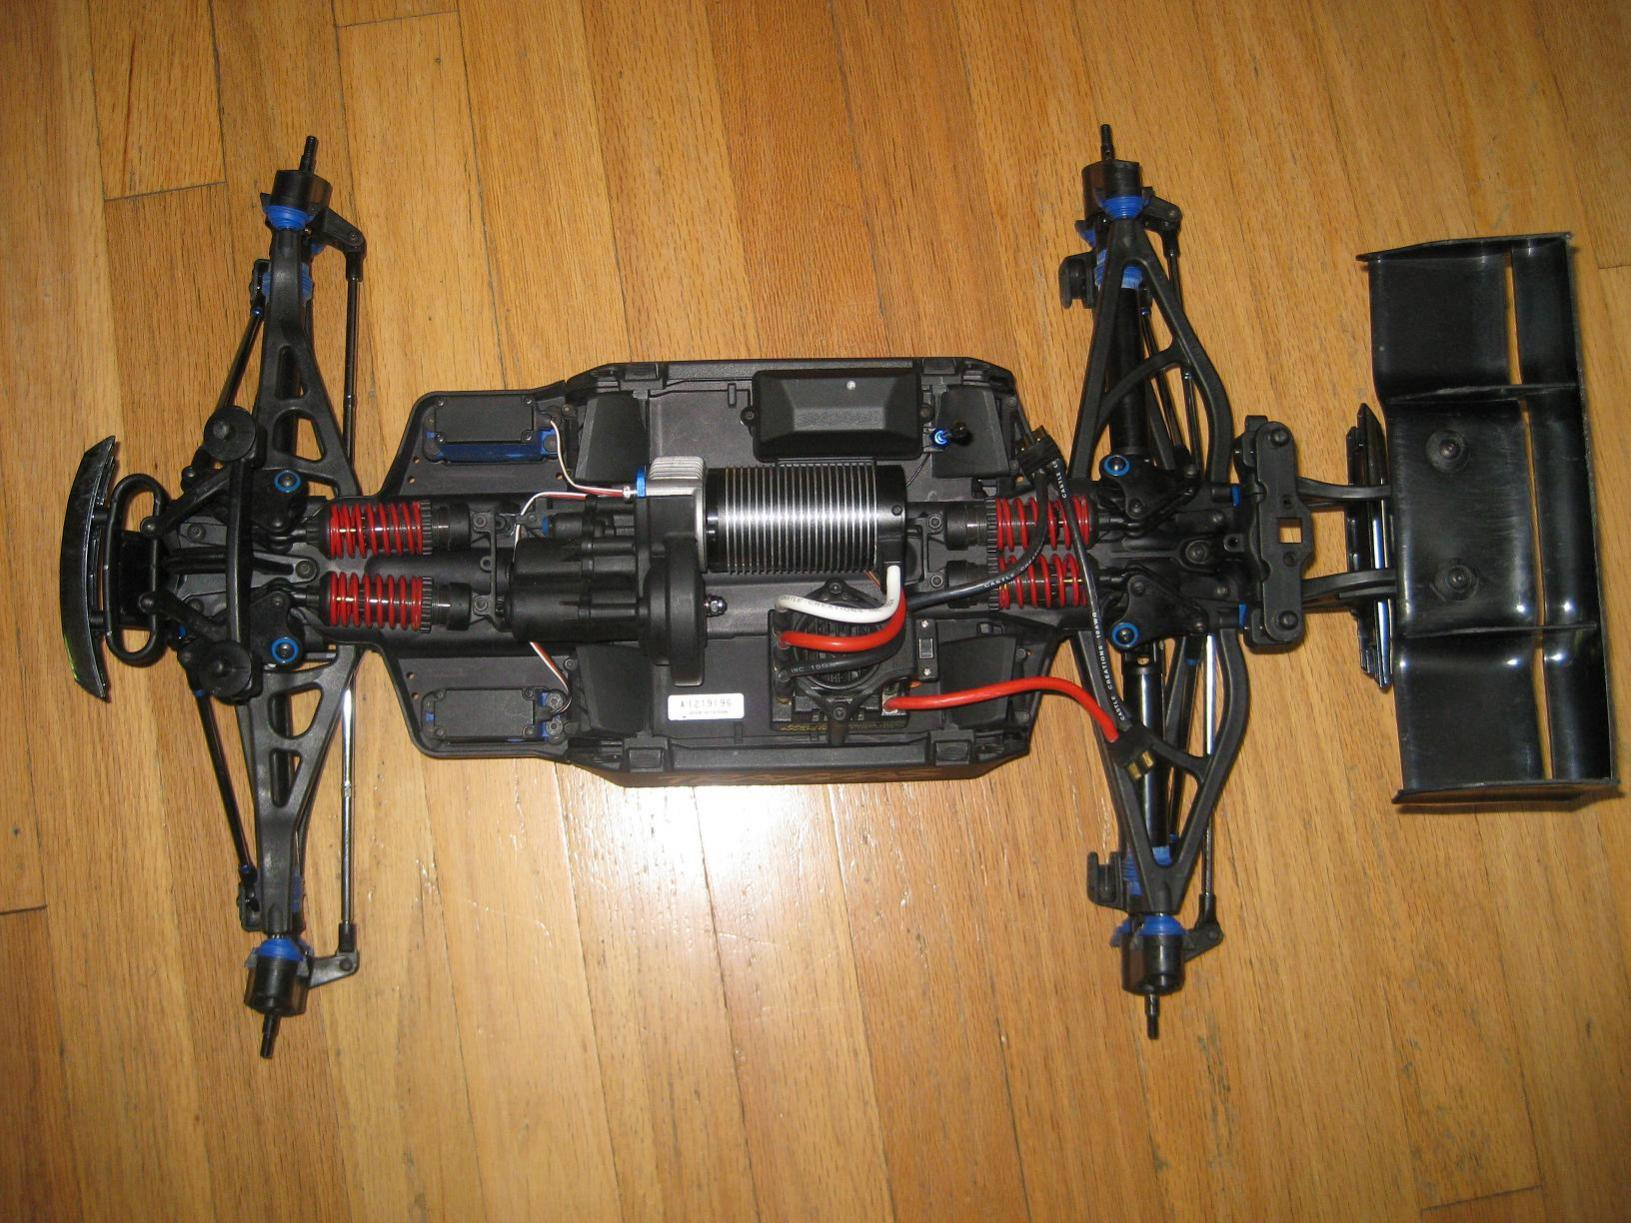 Xrc hobby blog malaysia traxxas e revo brushless rtr monster the traxxas e revo was designed to be brushless ready pooptronica